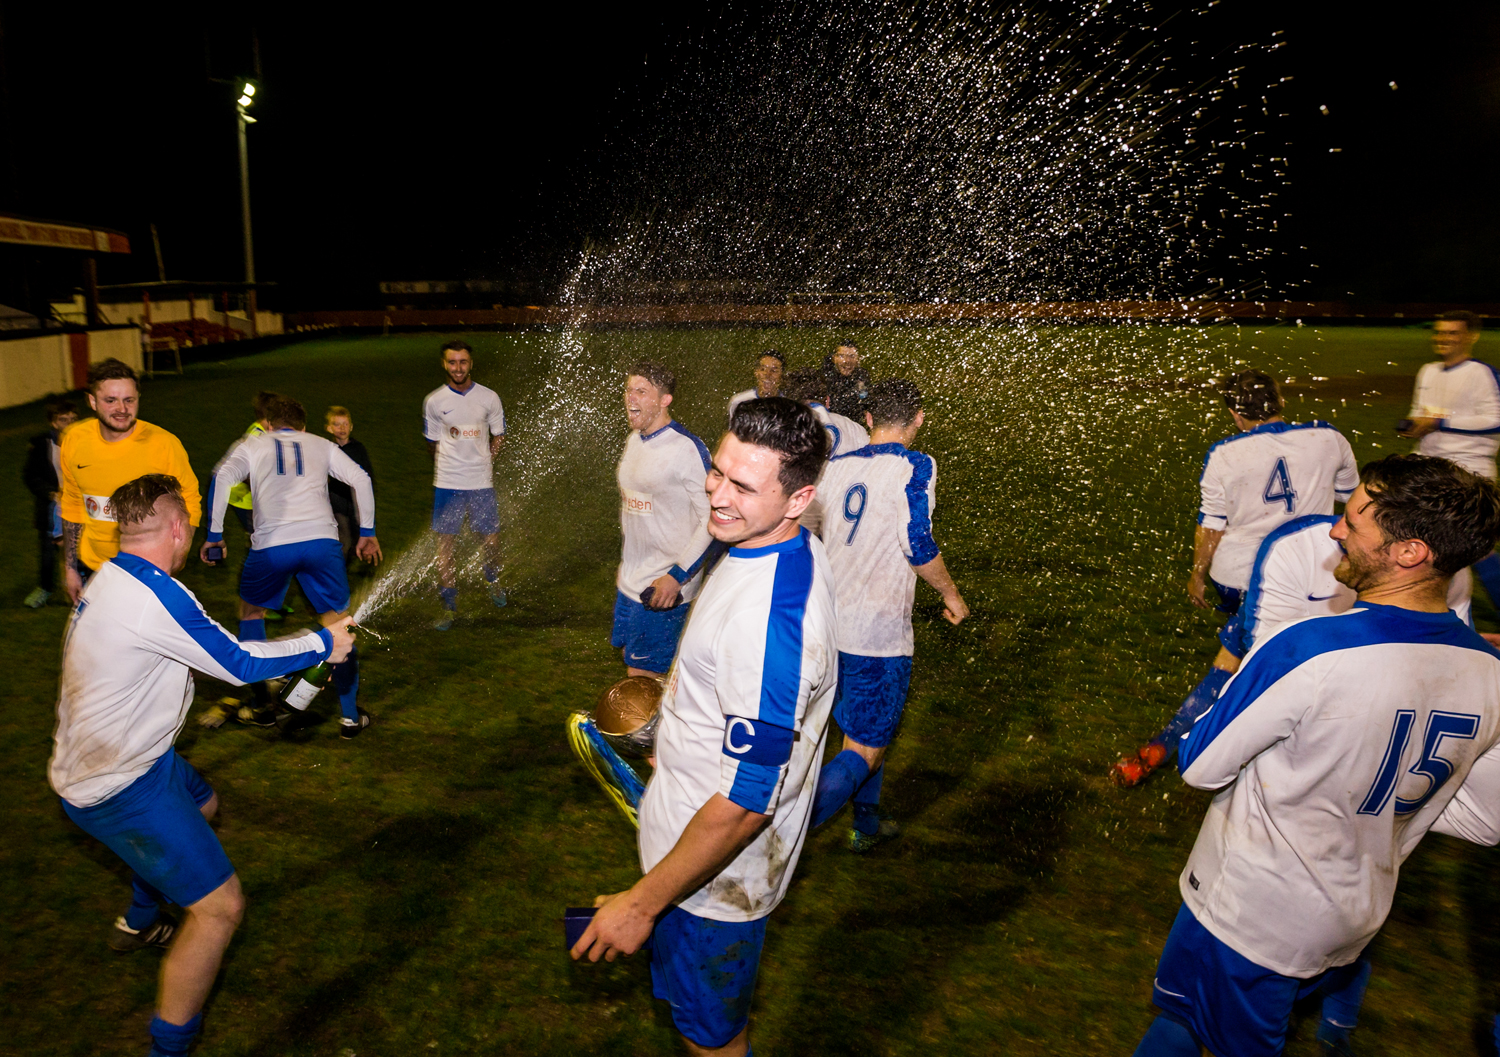 Bracknell Sunday League Cups drawn to semi-final stages